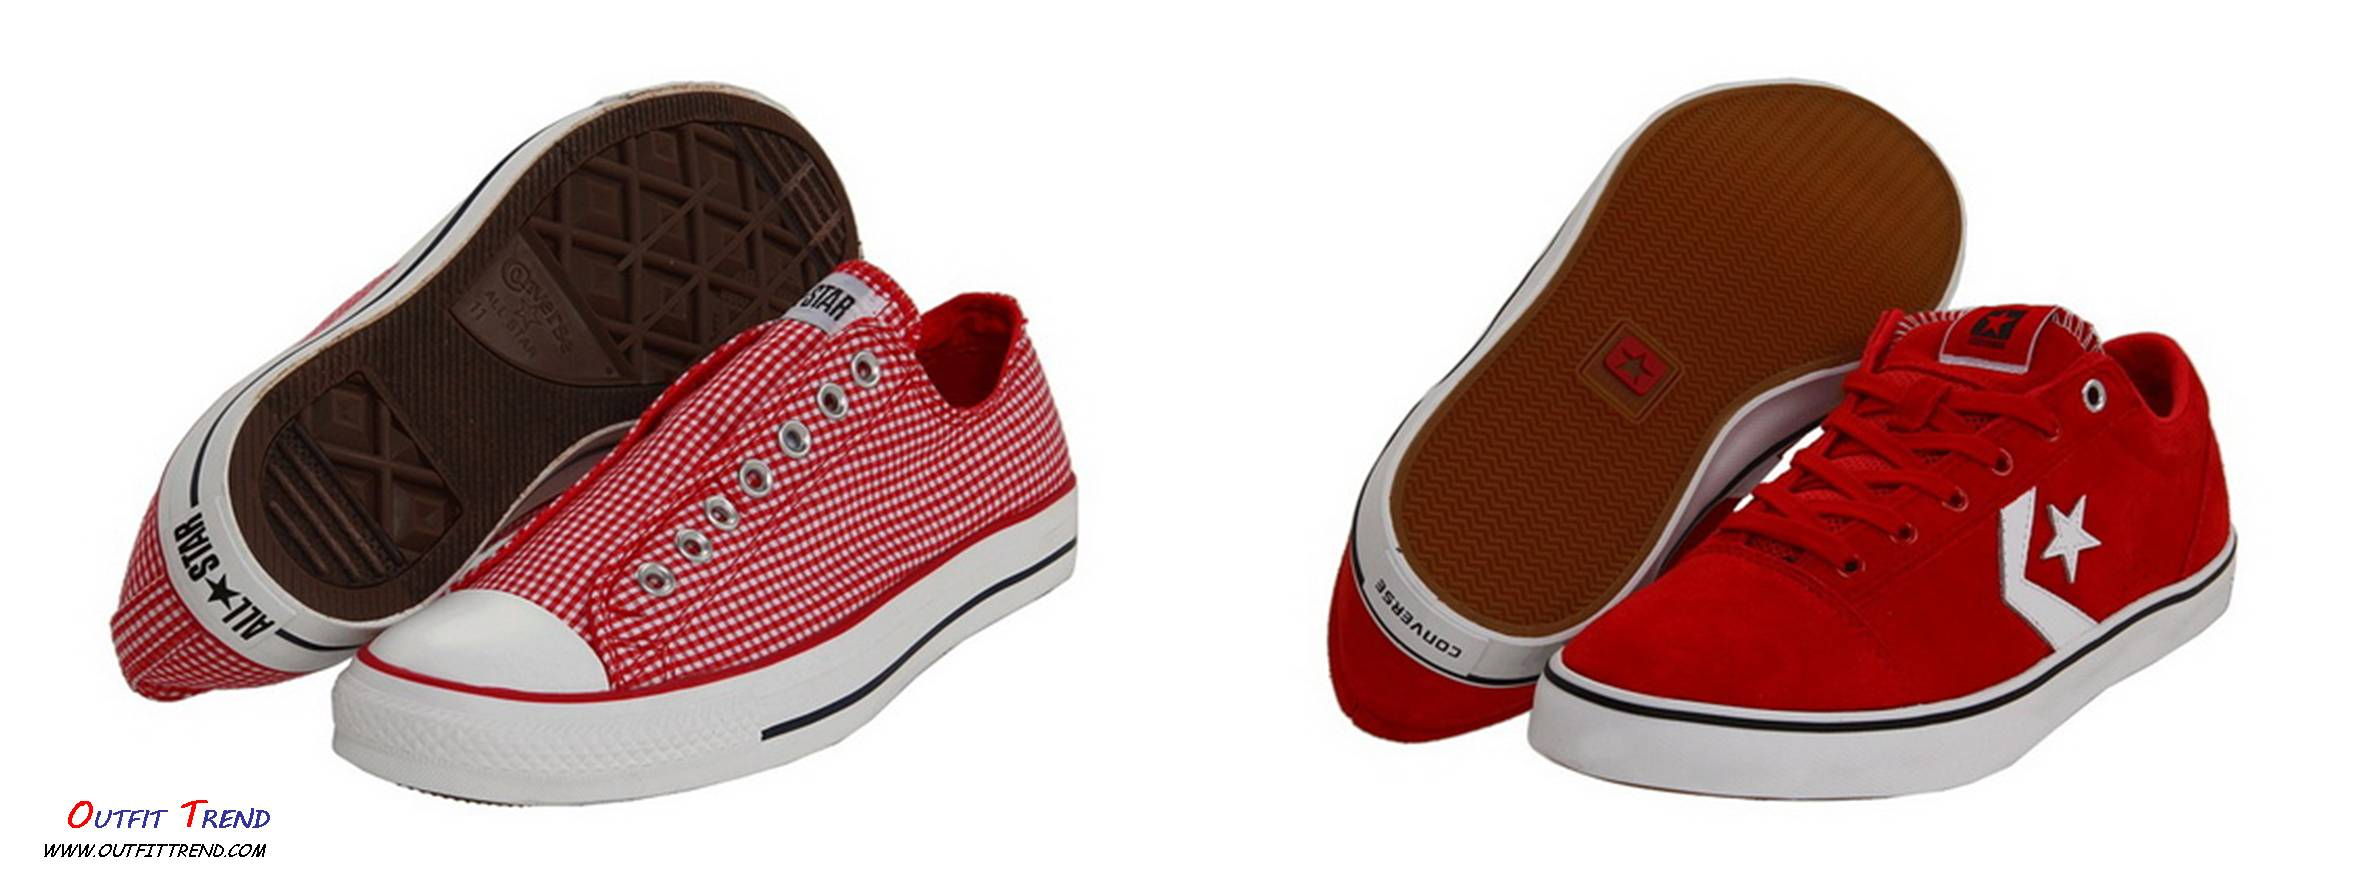 Red-Converse-All-Star-For-Men Trendy Converse Chuck Taylor All Stars For Men Collection